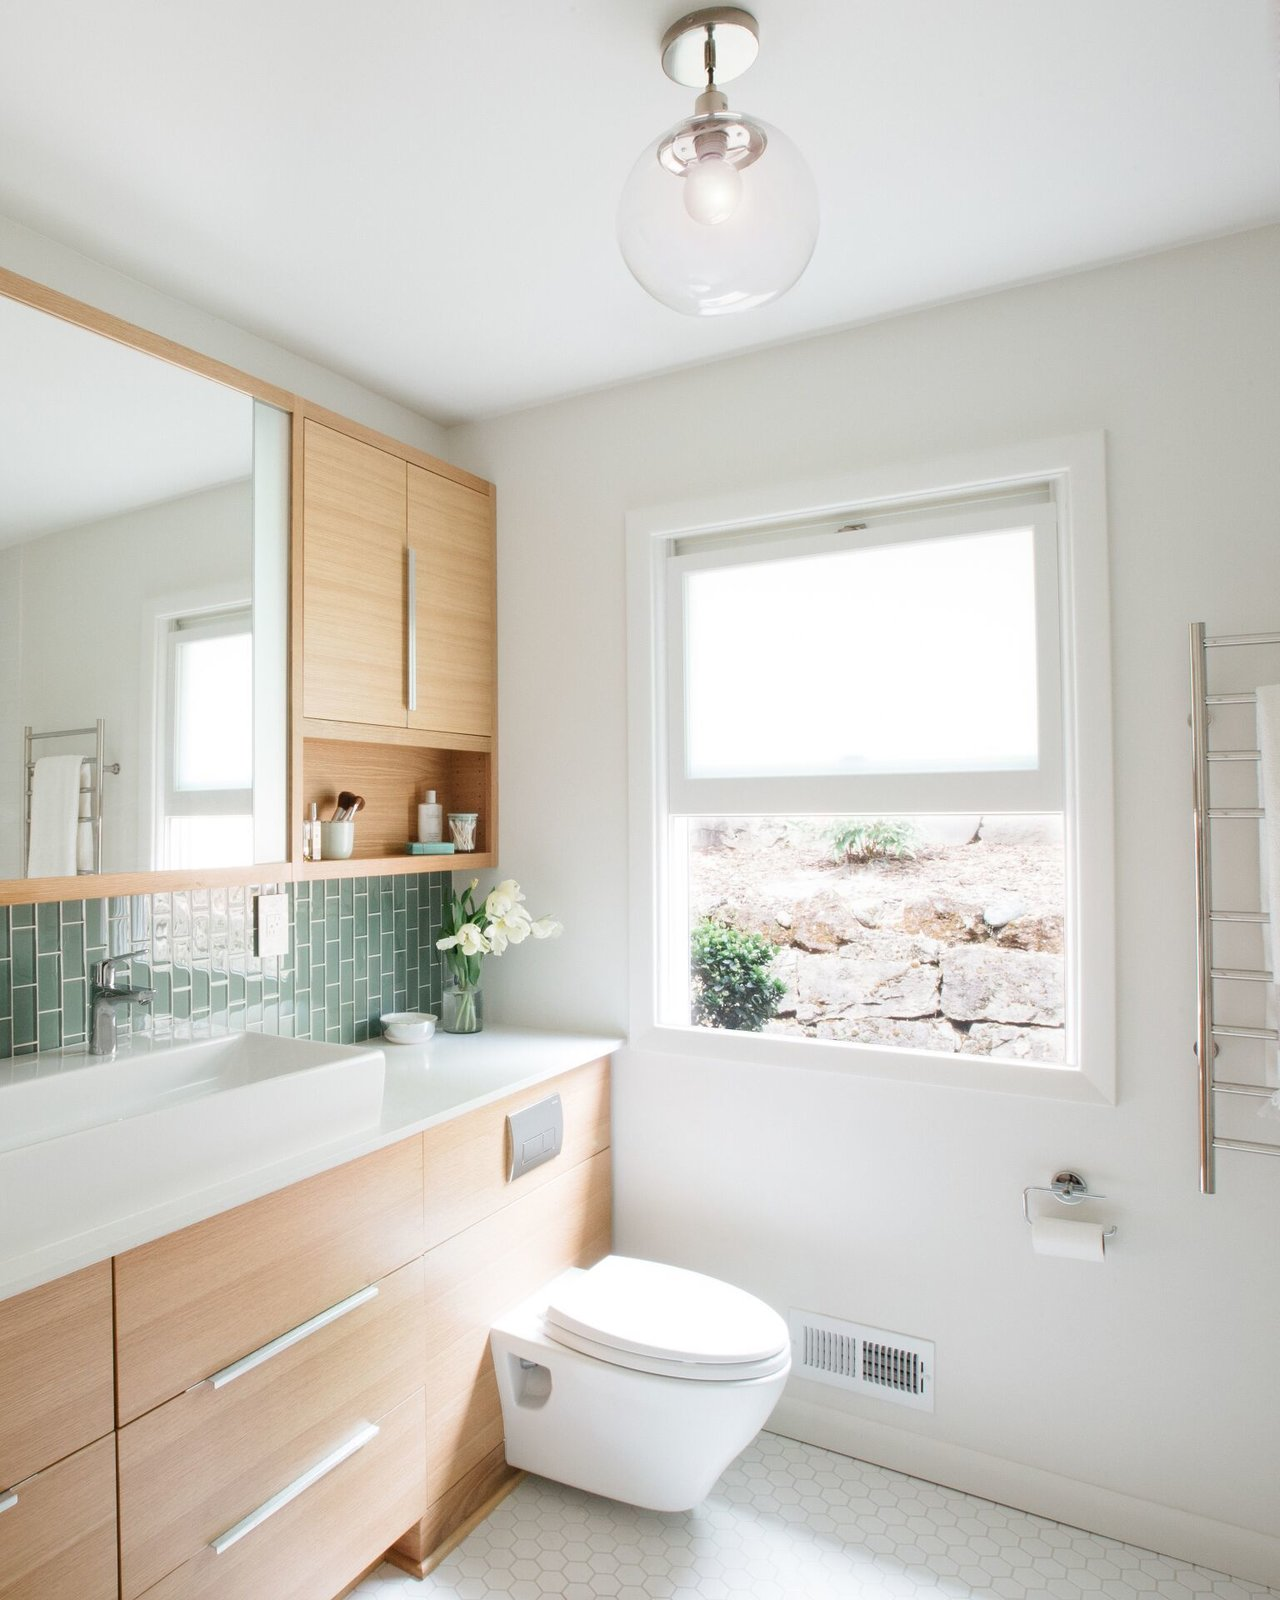 Bath Room, One Piece Toilet, Ceramic Tile Floor, Ceiling Lighting, and Vessel Sink  Photo 3 of 15 in What's the Best Way to Save Space in a Small Bathroom?